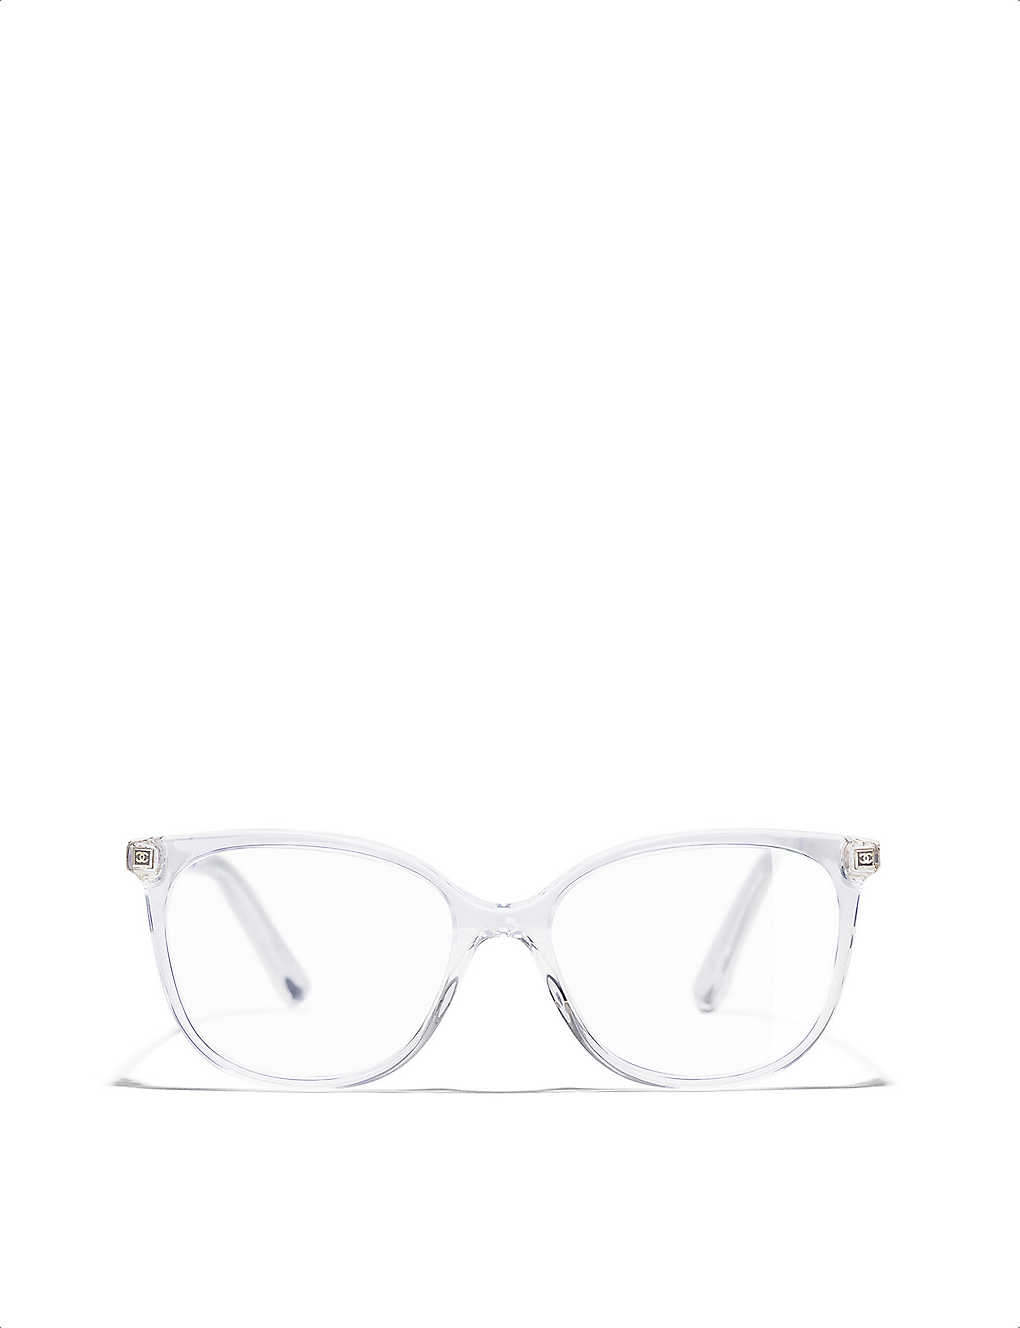 6fcecdeee4516 0ch3383 clear-frame glasses - Clear ...